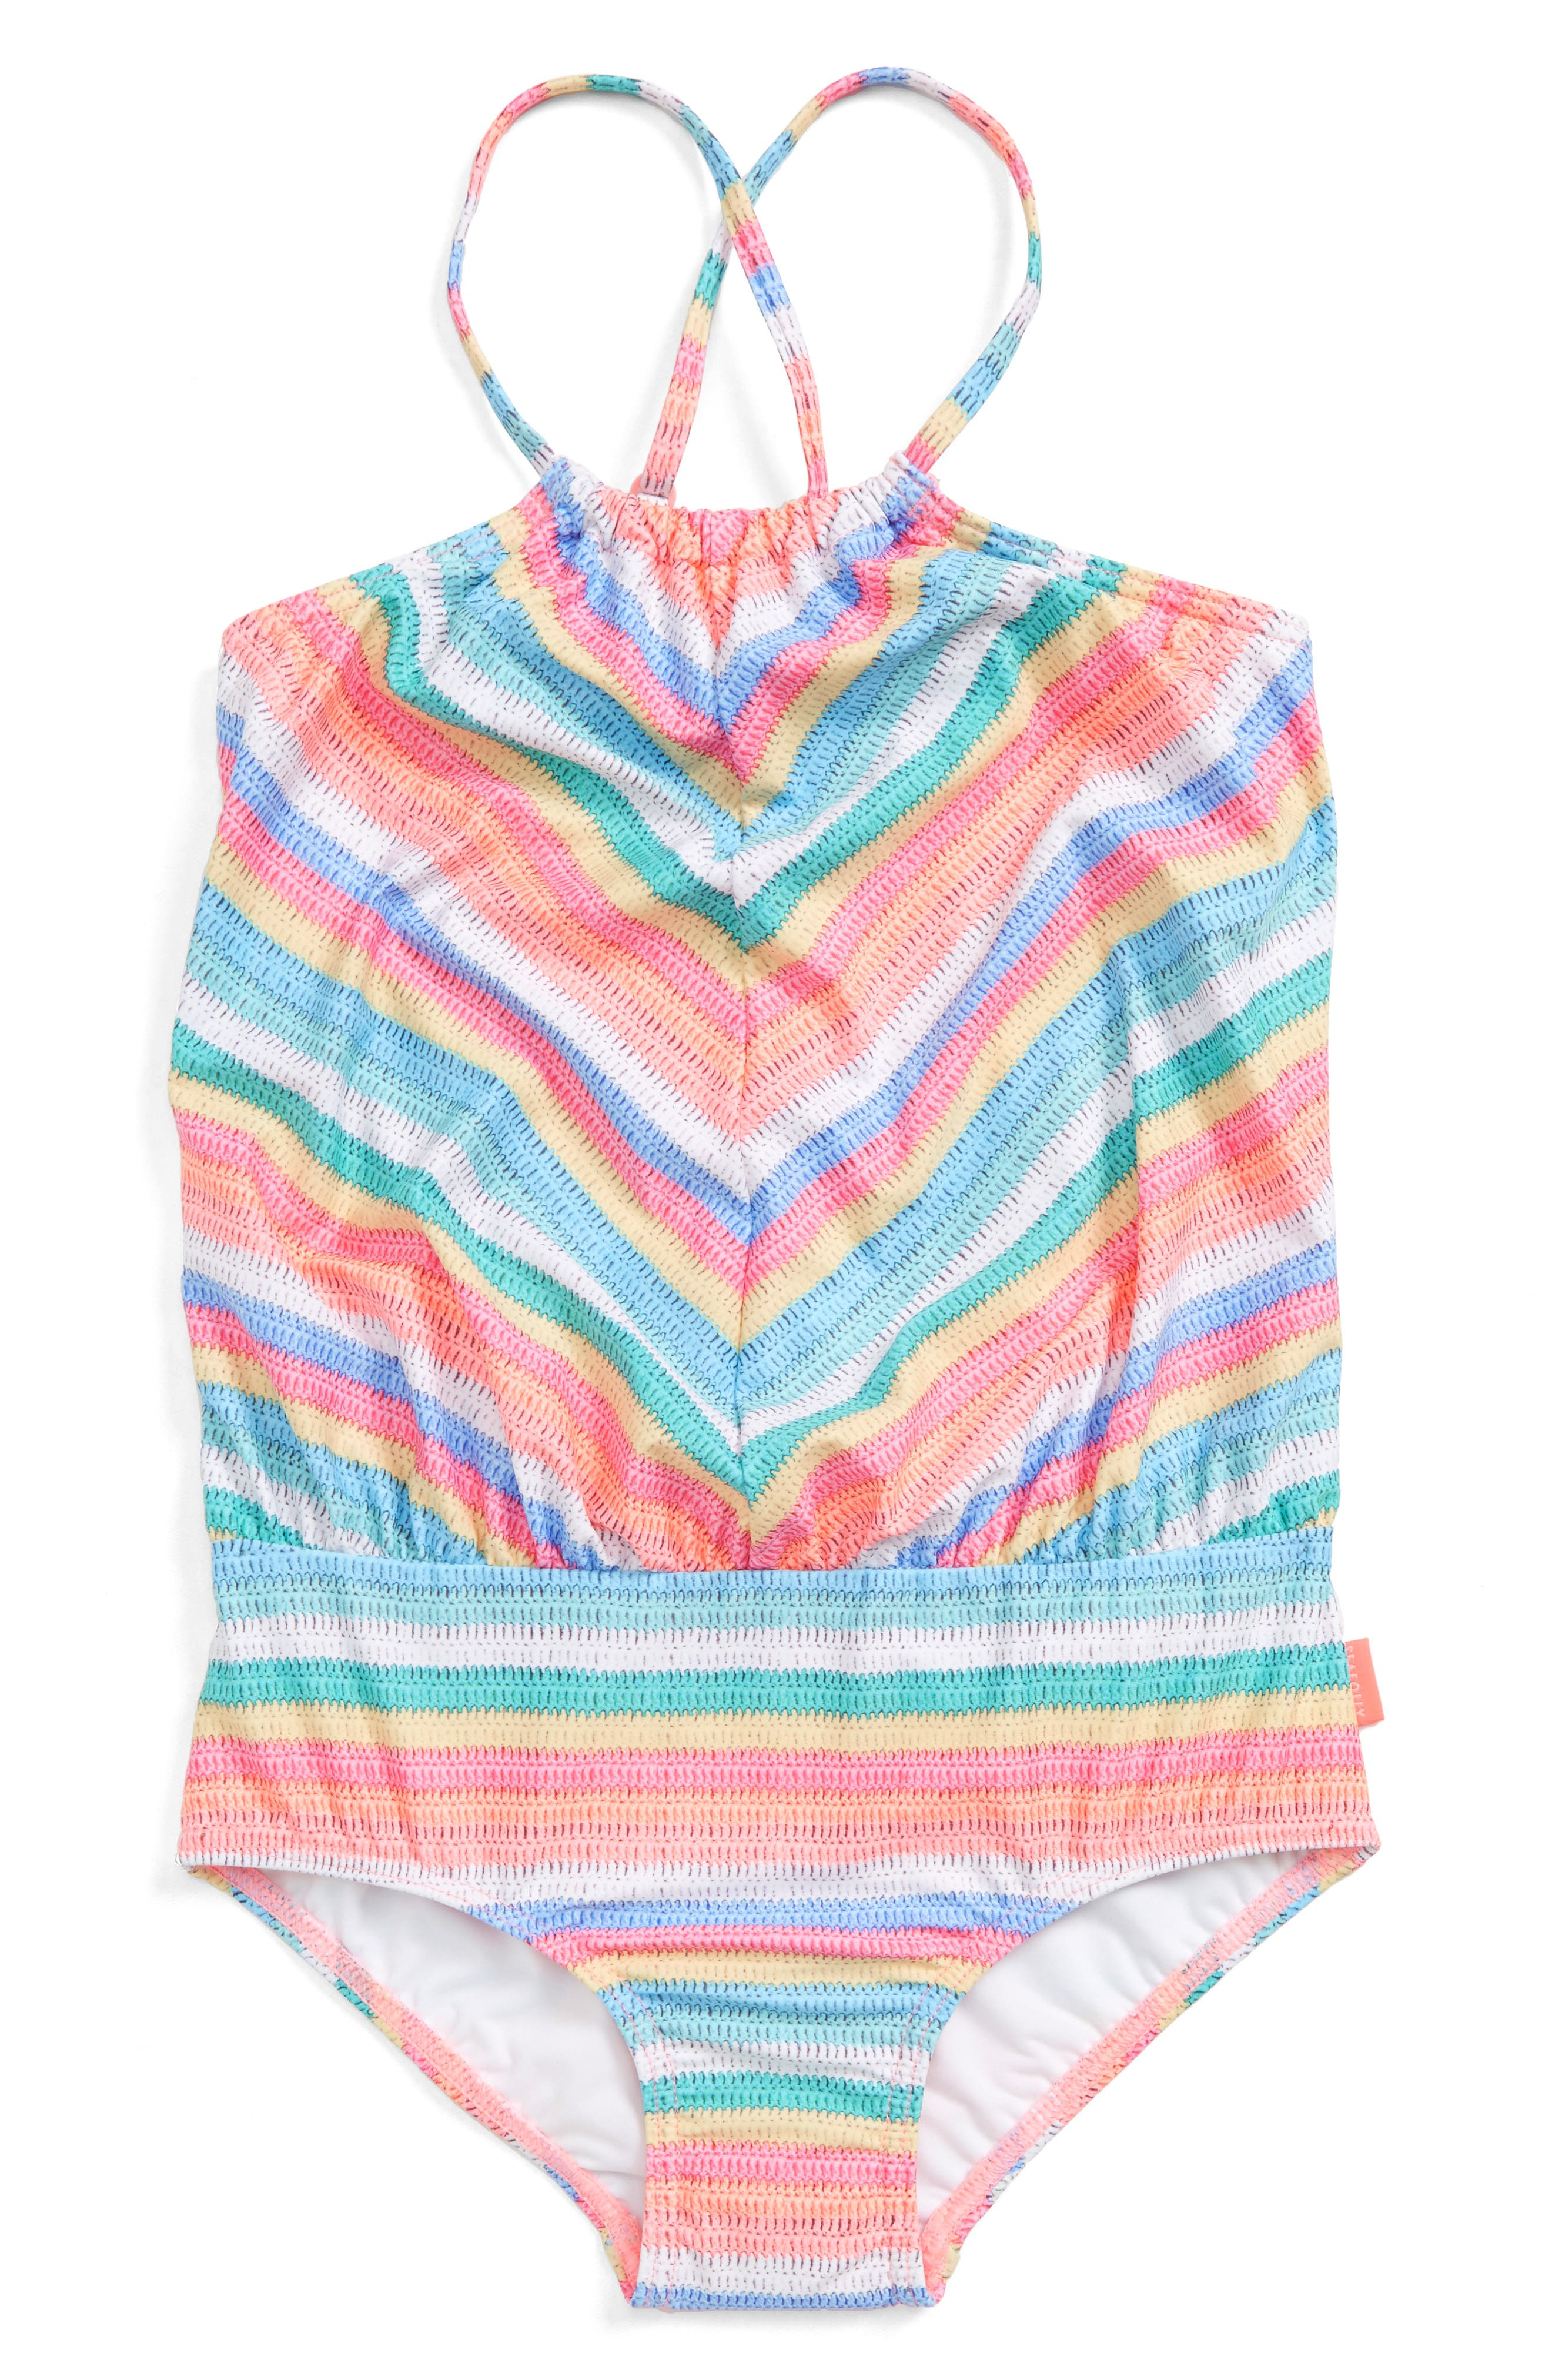 Candy Pop One-Piece Swimsuit,                         Main,                         color, 650